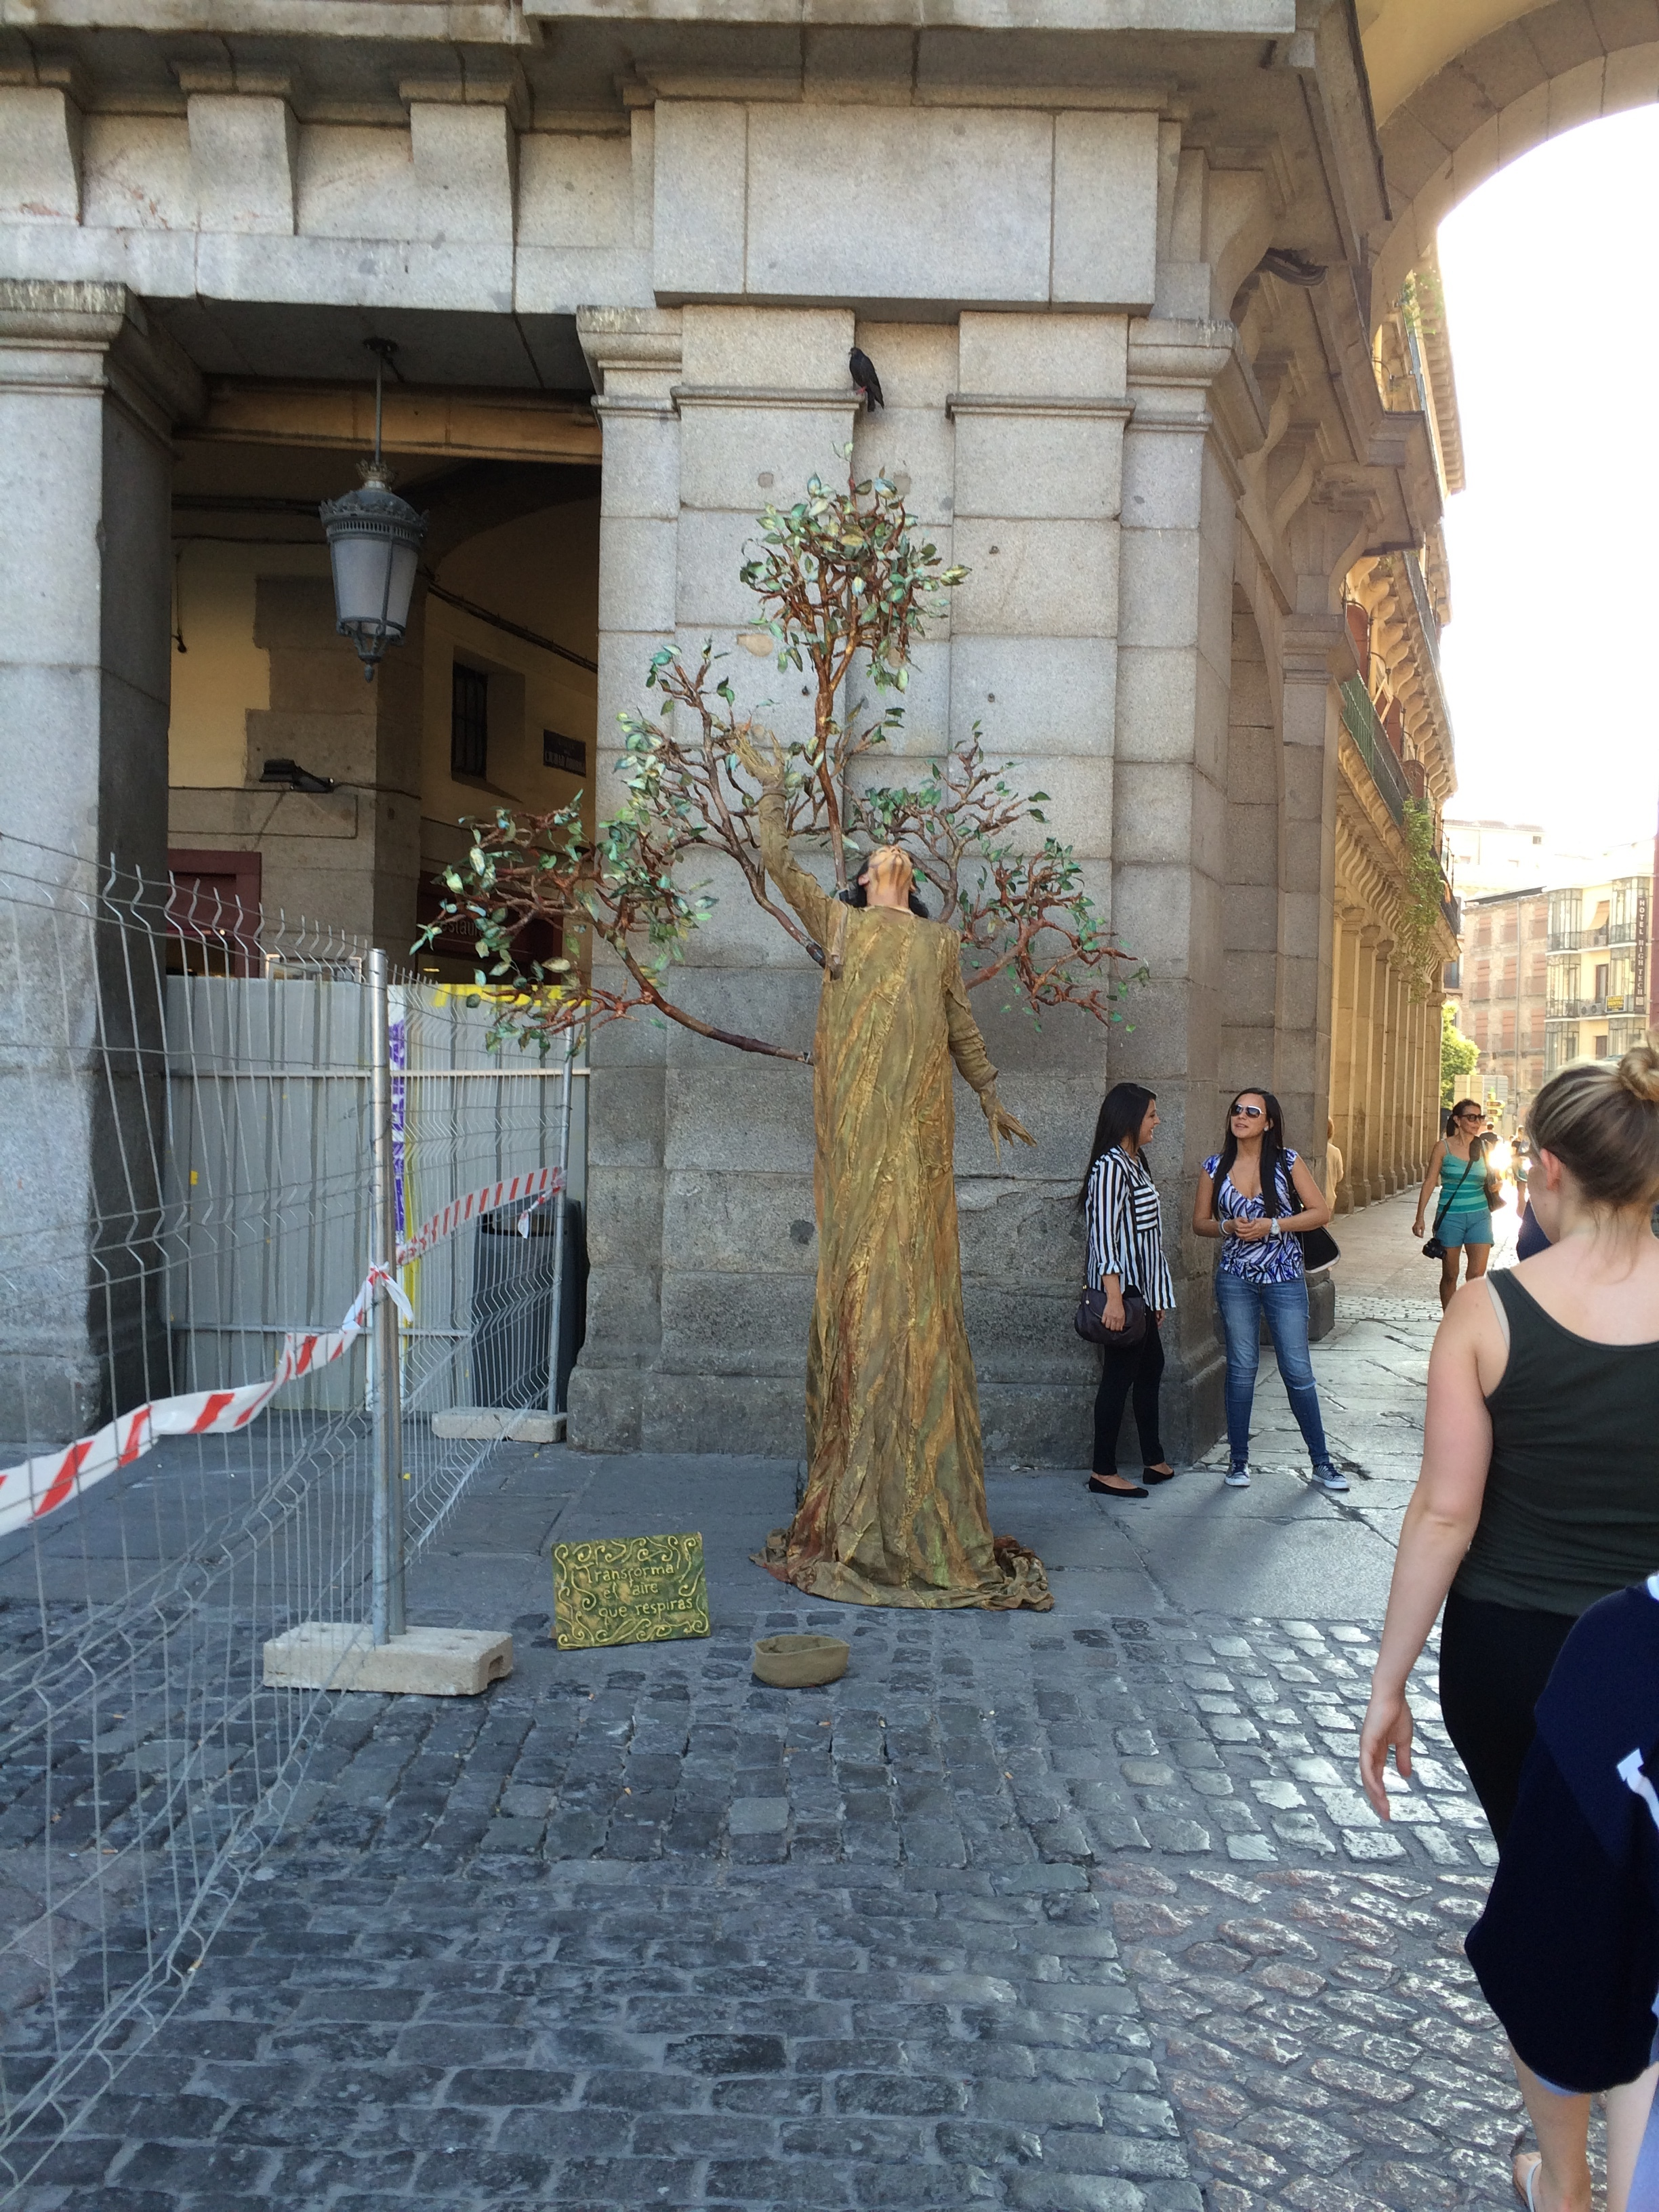 In Madrid, Spain. A person dressed as a tree.